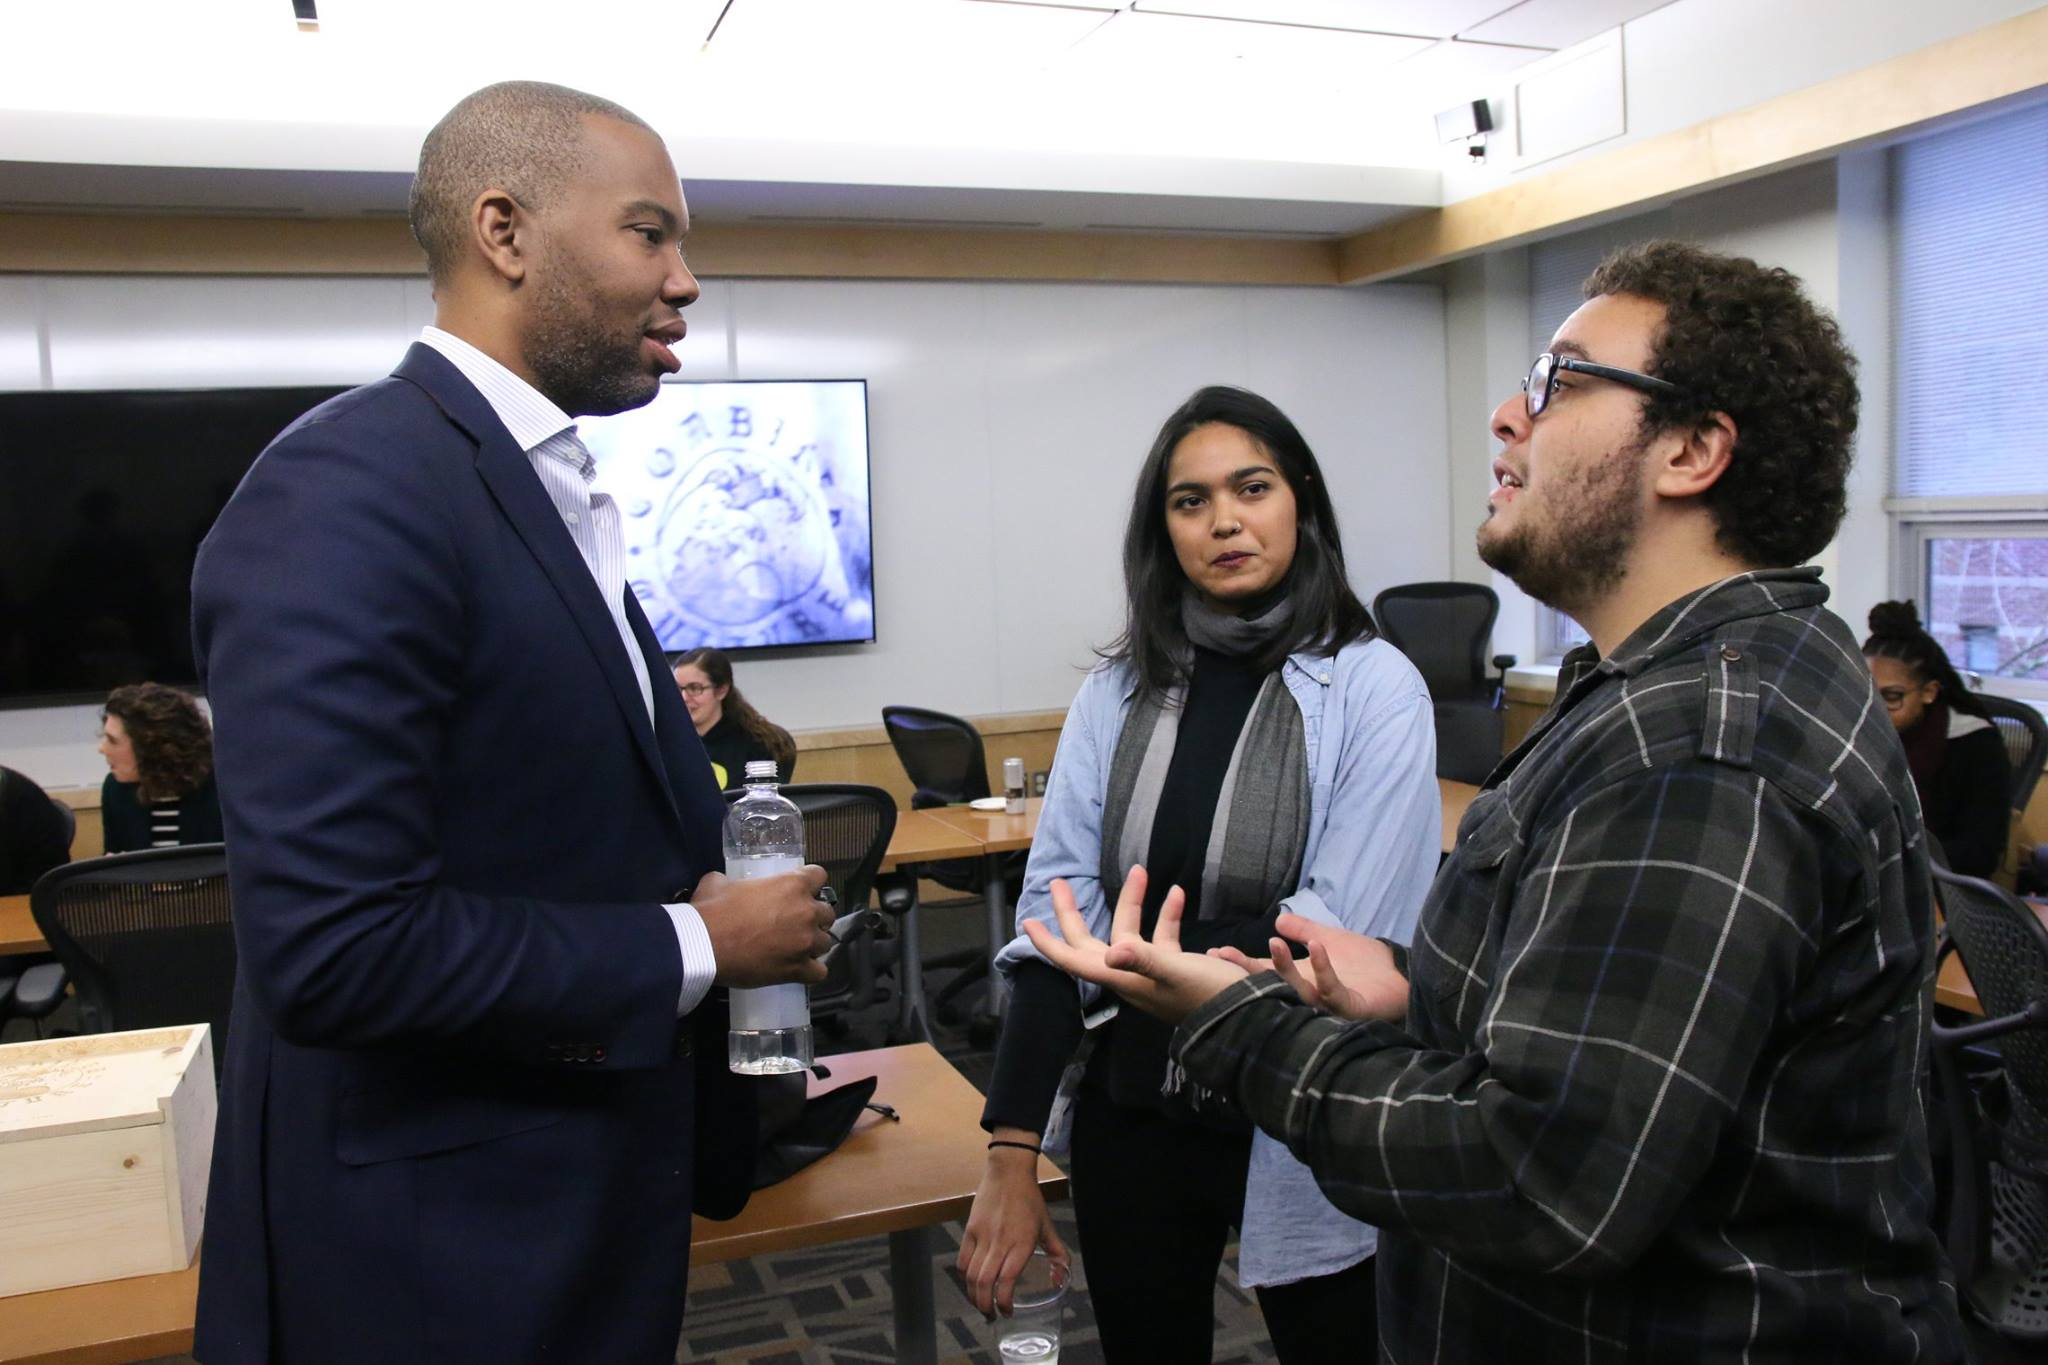 Ta-Nehisi Coates @ Eugene, OR - I had the opportunity to meet and talk with Ta-Nehisi Coates about the challenges I face in describing my identity as a Brazilian in the U.S. and how to describe the